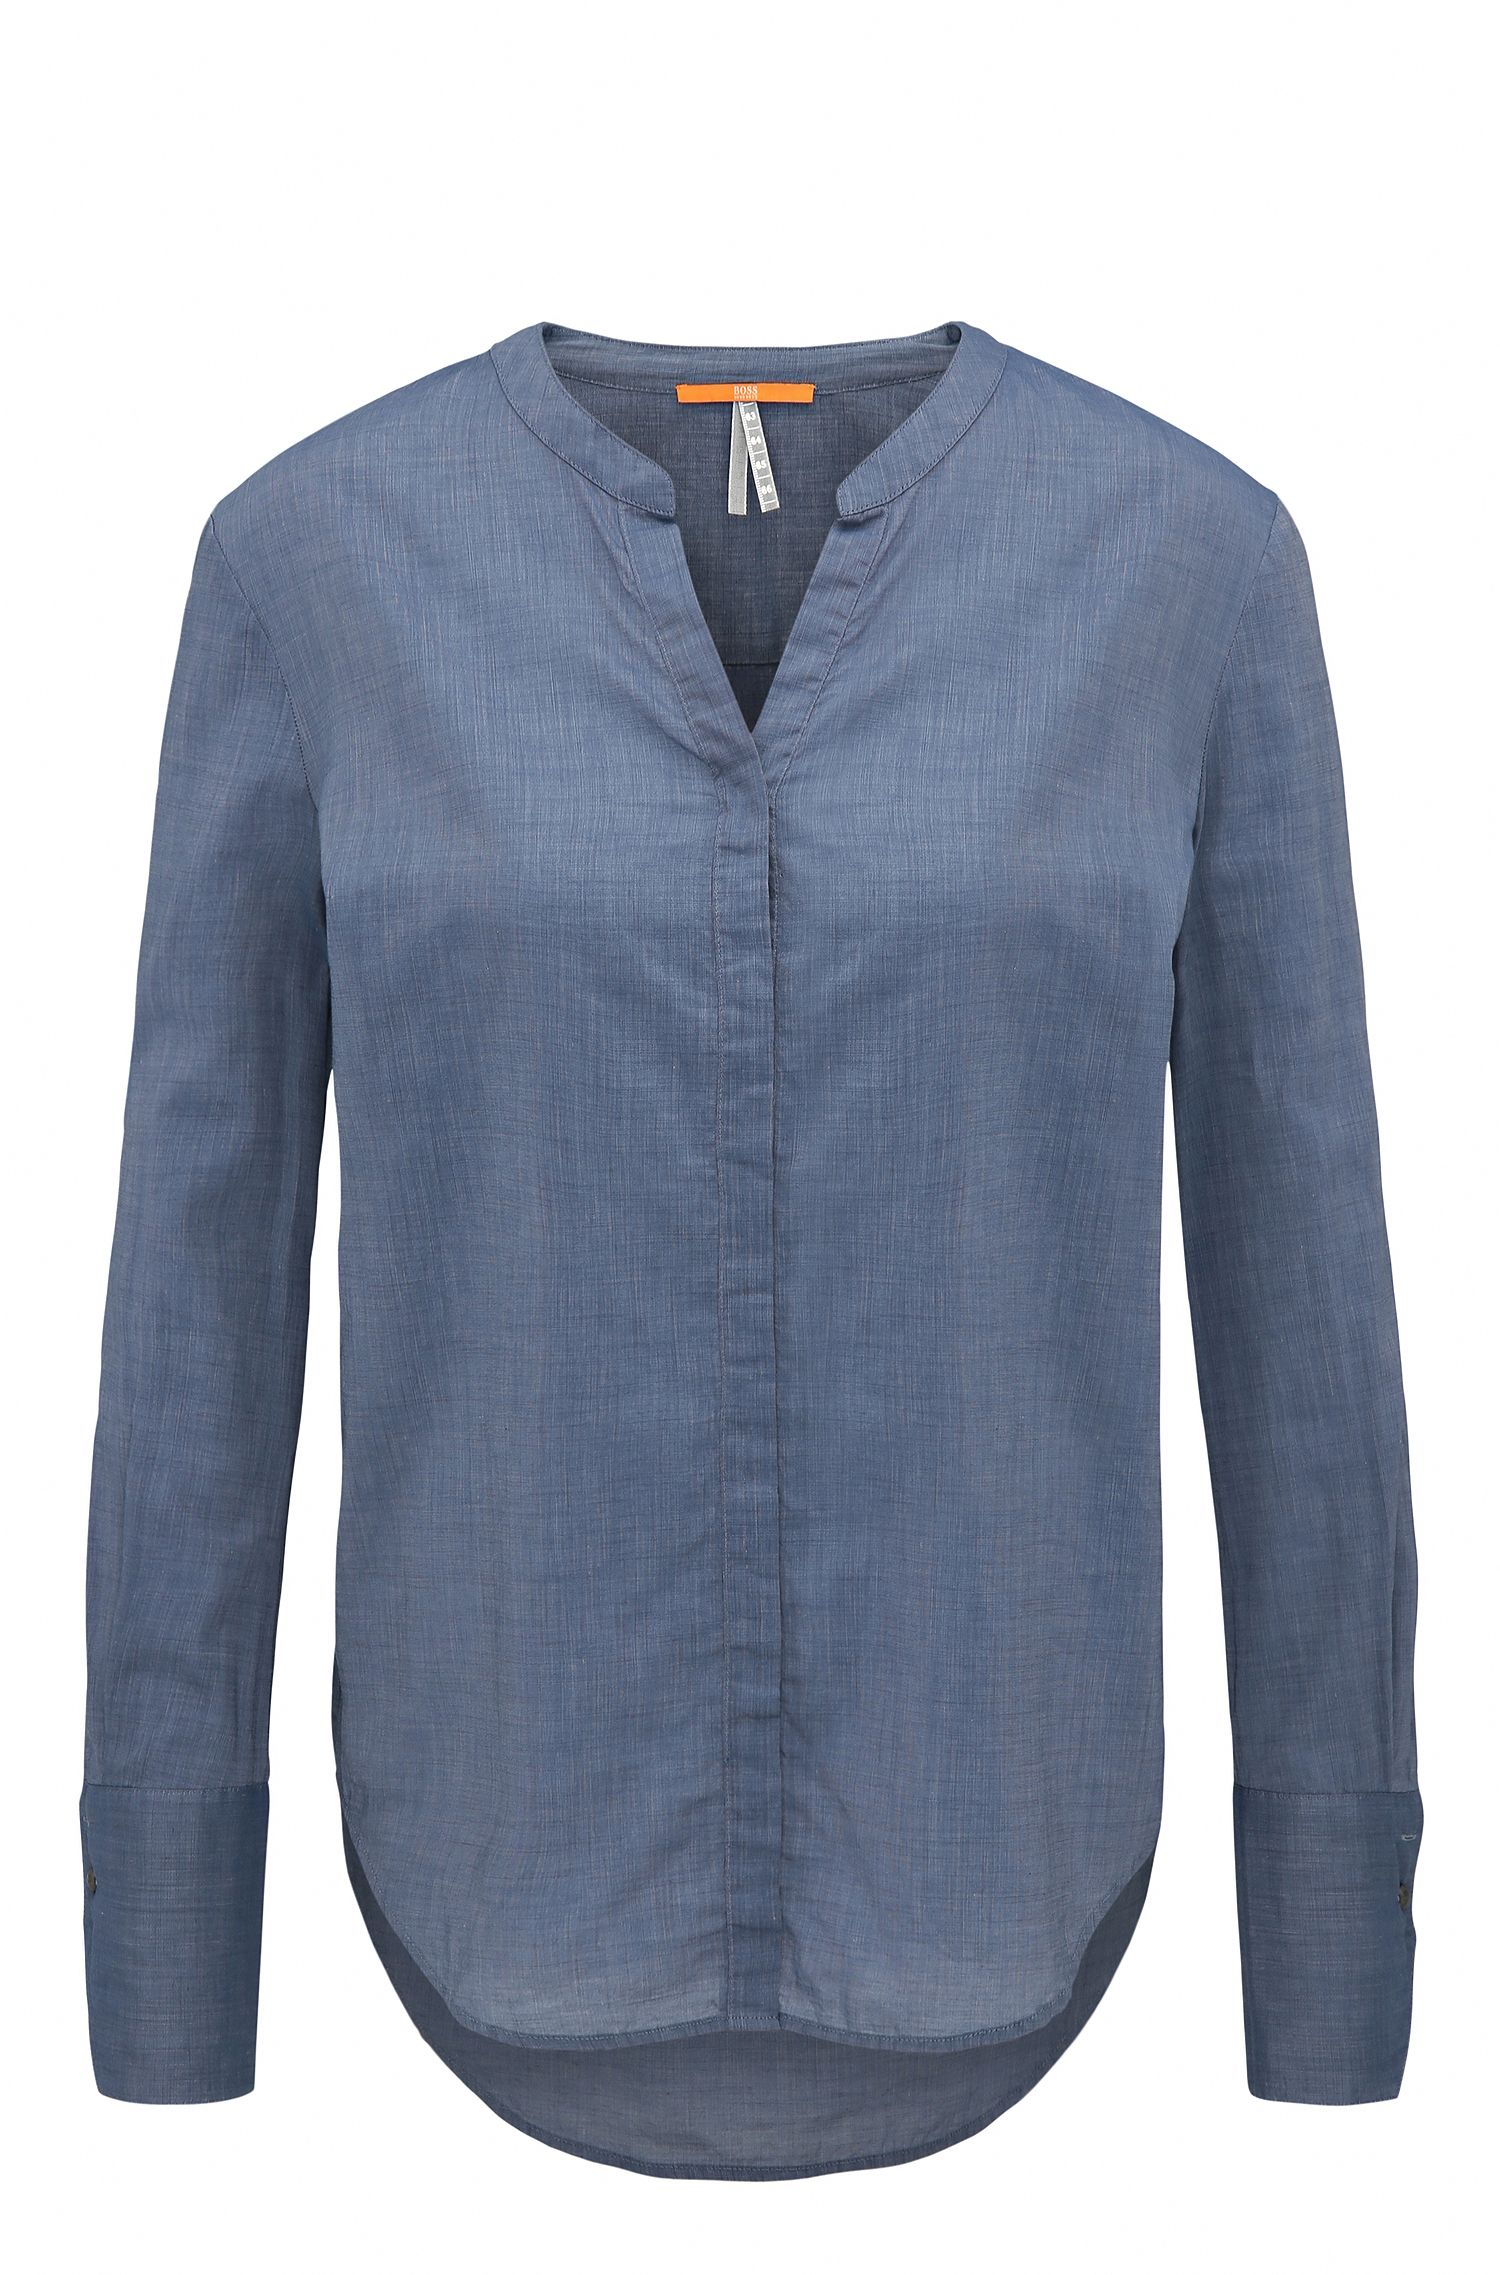 Regular-fit blouse in chambray van een katoenmix